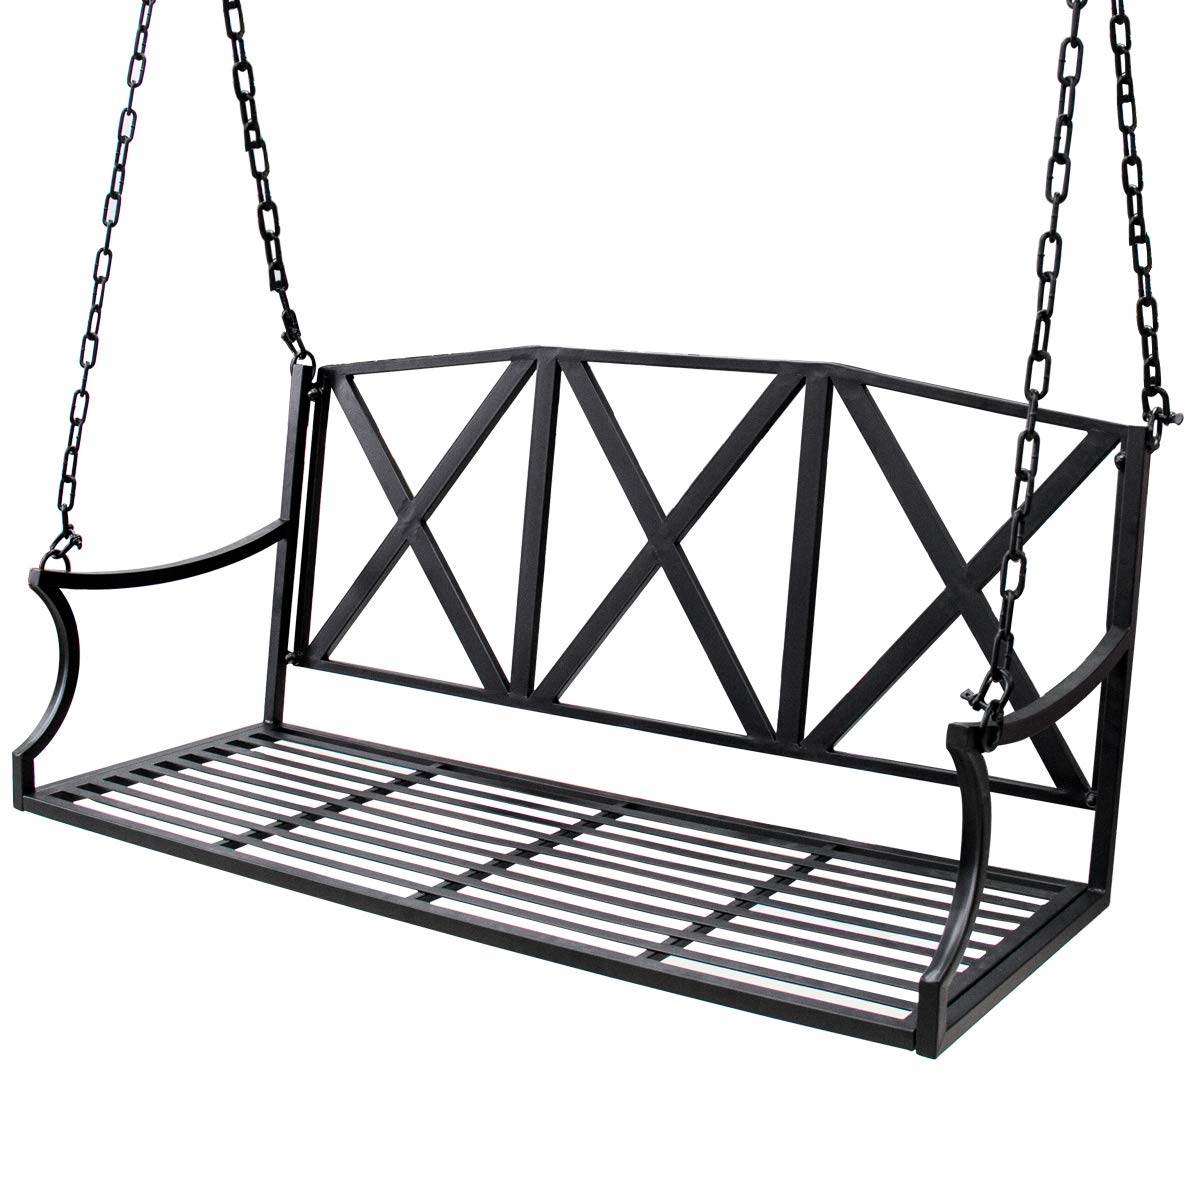 Bizzoelife Hanging Patio Porch Swing Bench Metal Swing Chair with Iron Chains for Yard Garden Lawn (4ft, Black) by Bizzoelife